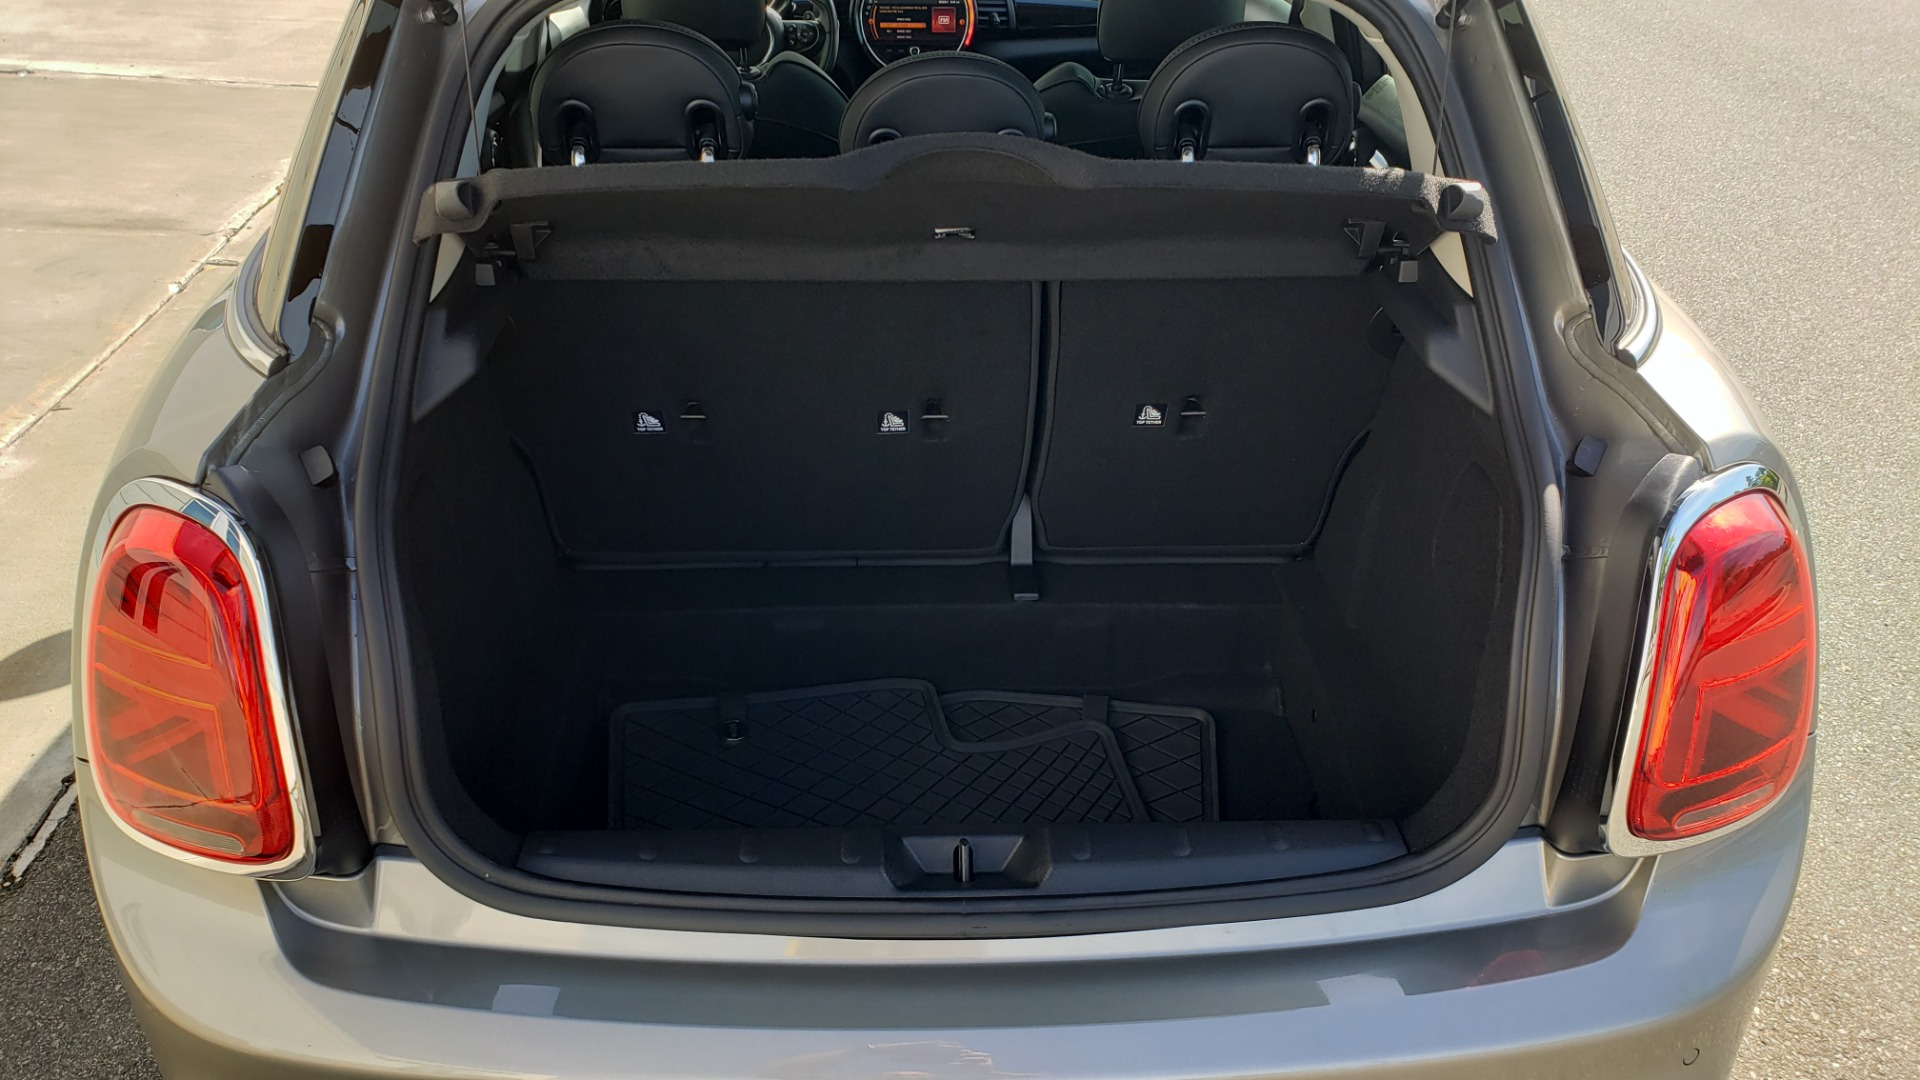 Used 2020 MINI HARDTOP 4 DOOR COOPER S / NAV / SUNROOF / AUTO / H/K SND / REARVIEW for sale $28,495 at Formula Imports in Charlotte NC 28227 19